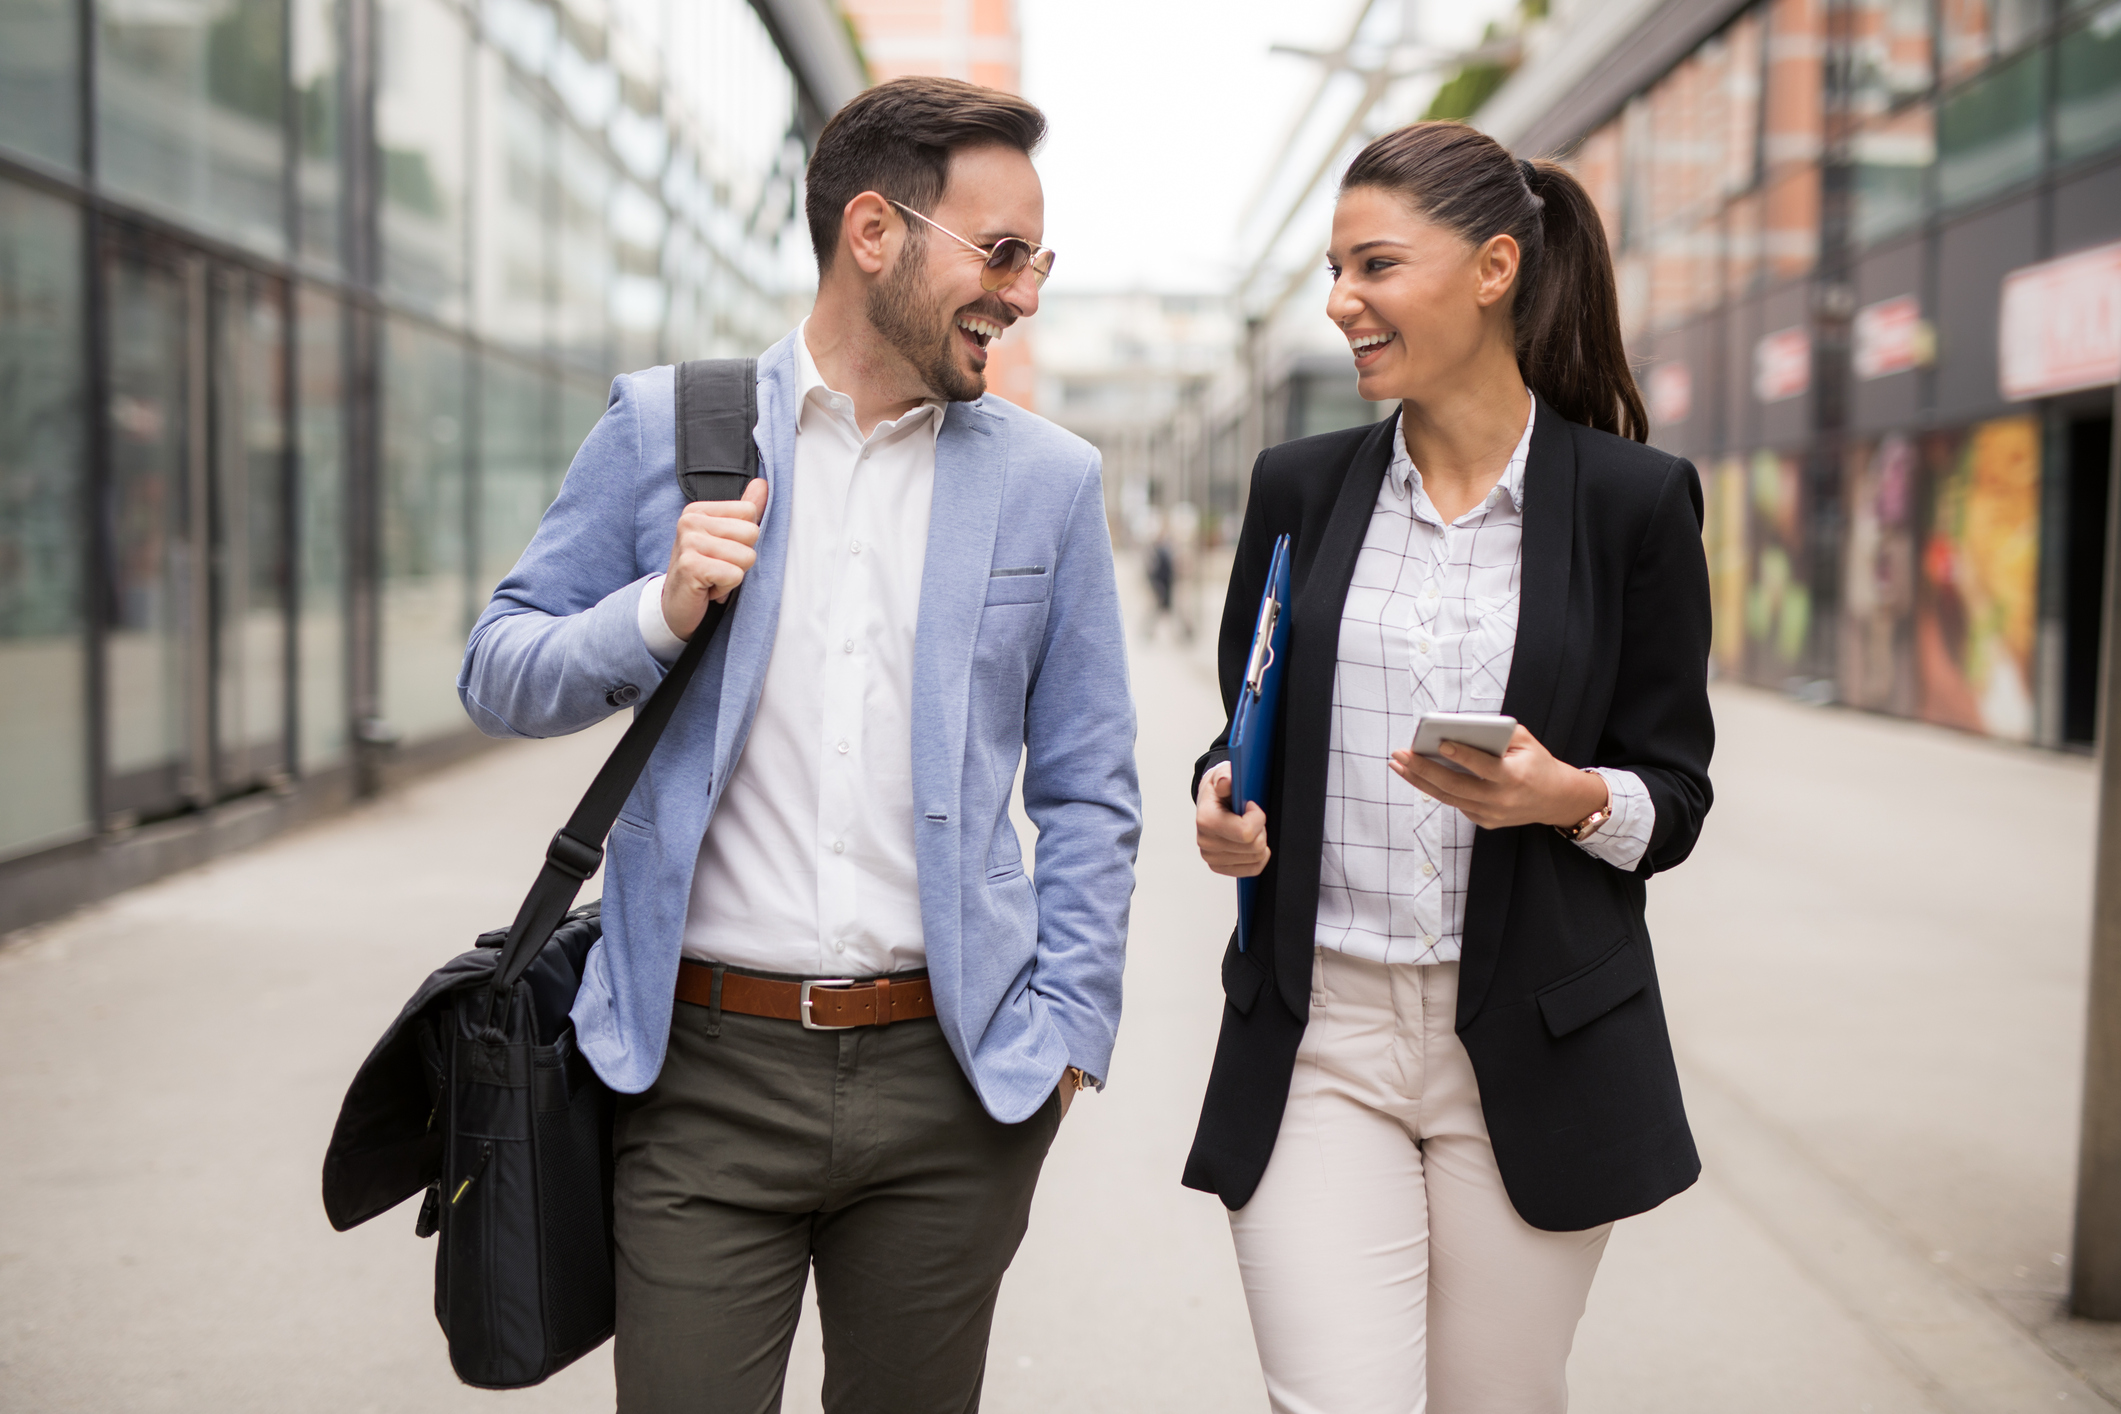 Stock photo of a male and female business colleagues walking